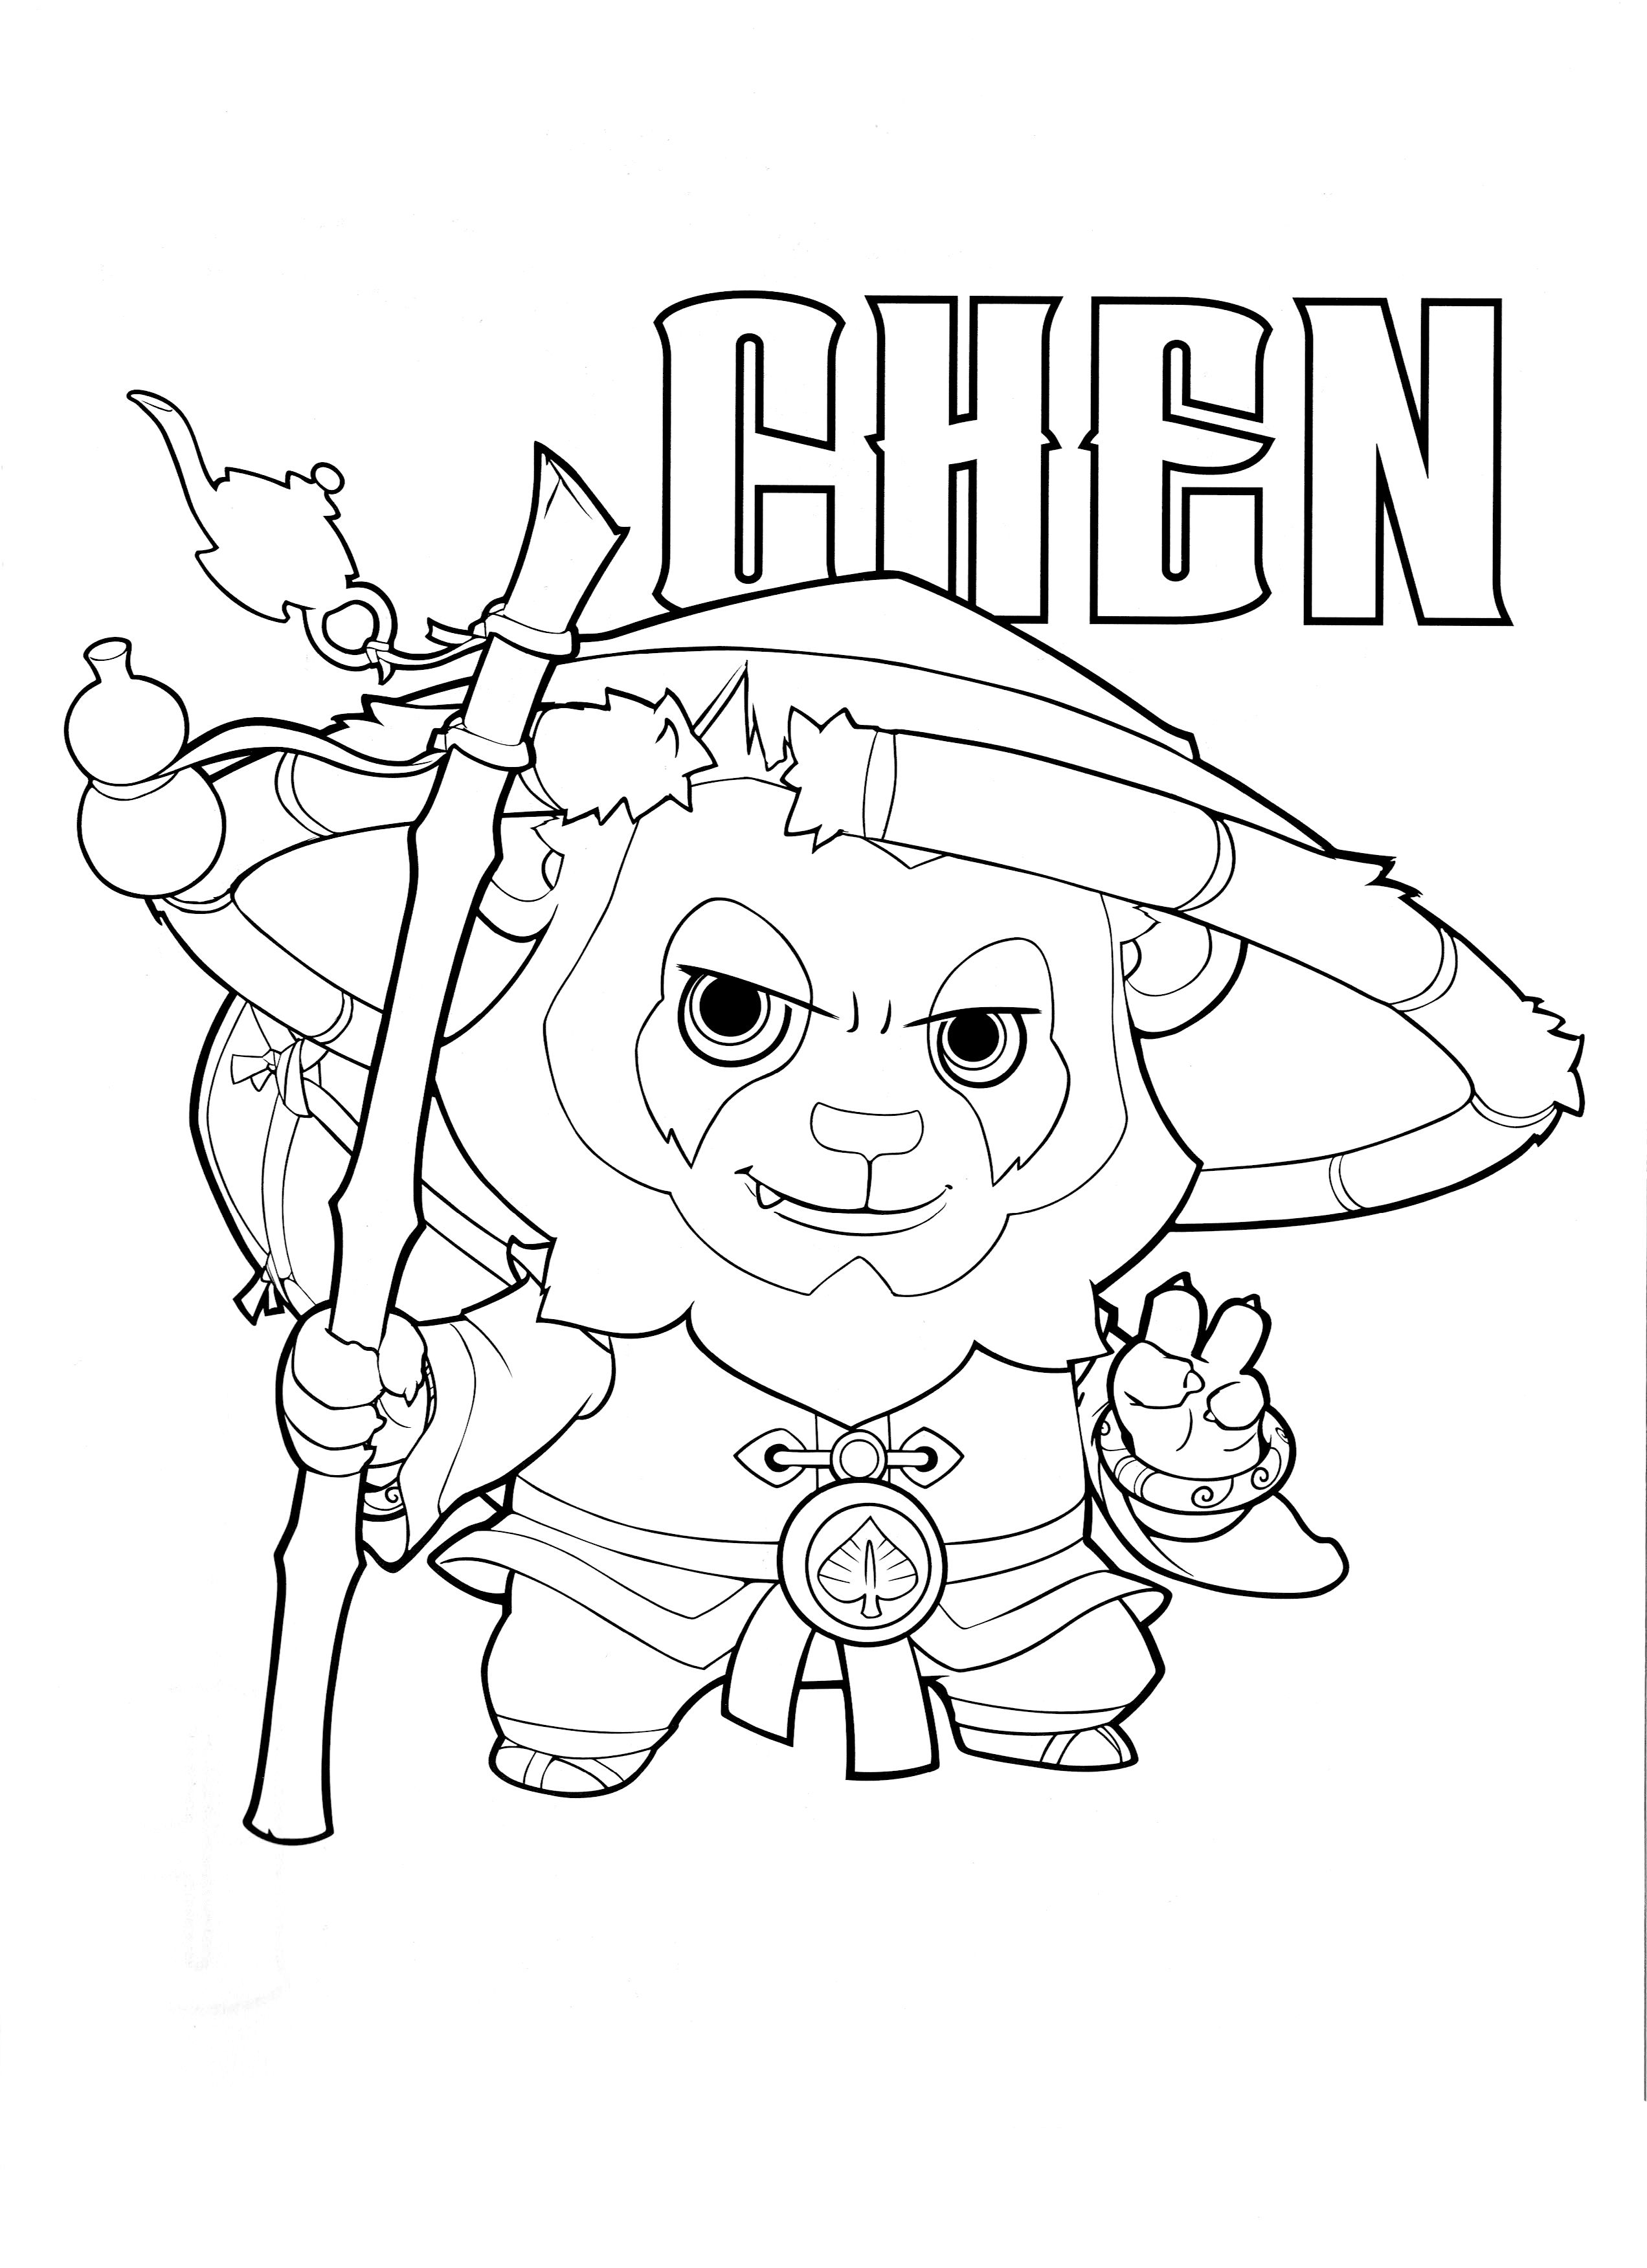 Have a Free Blizzard Coloring Book | Pinterest